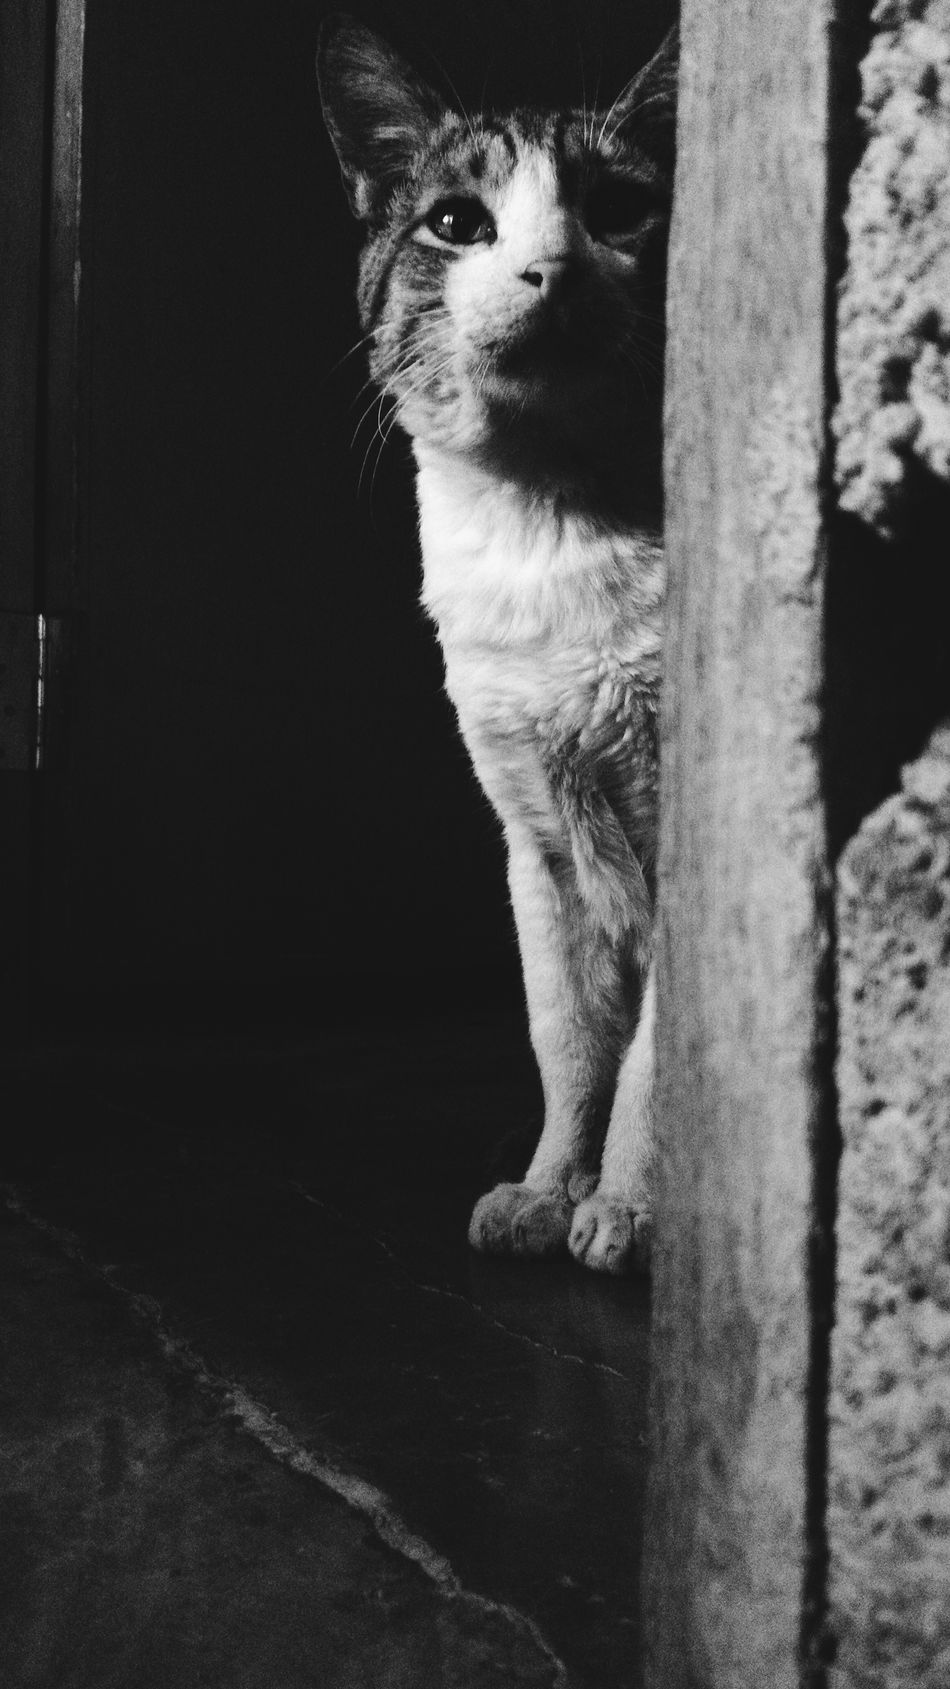 He's been hidding from our dog 🐈🐱 Cutelittlemeow Littlemeow Cat Androidography Beautiful 13mp Cute Blackandwhite Kitty Hidding Animals Pets Meow Claws Amazing Cool Pet Portrait Pets Corner Pet Photography  Photooftheday Beauty